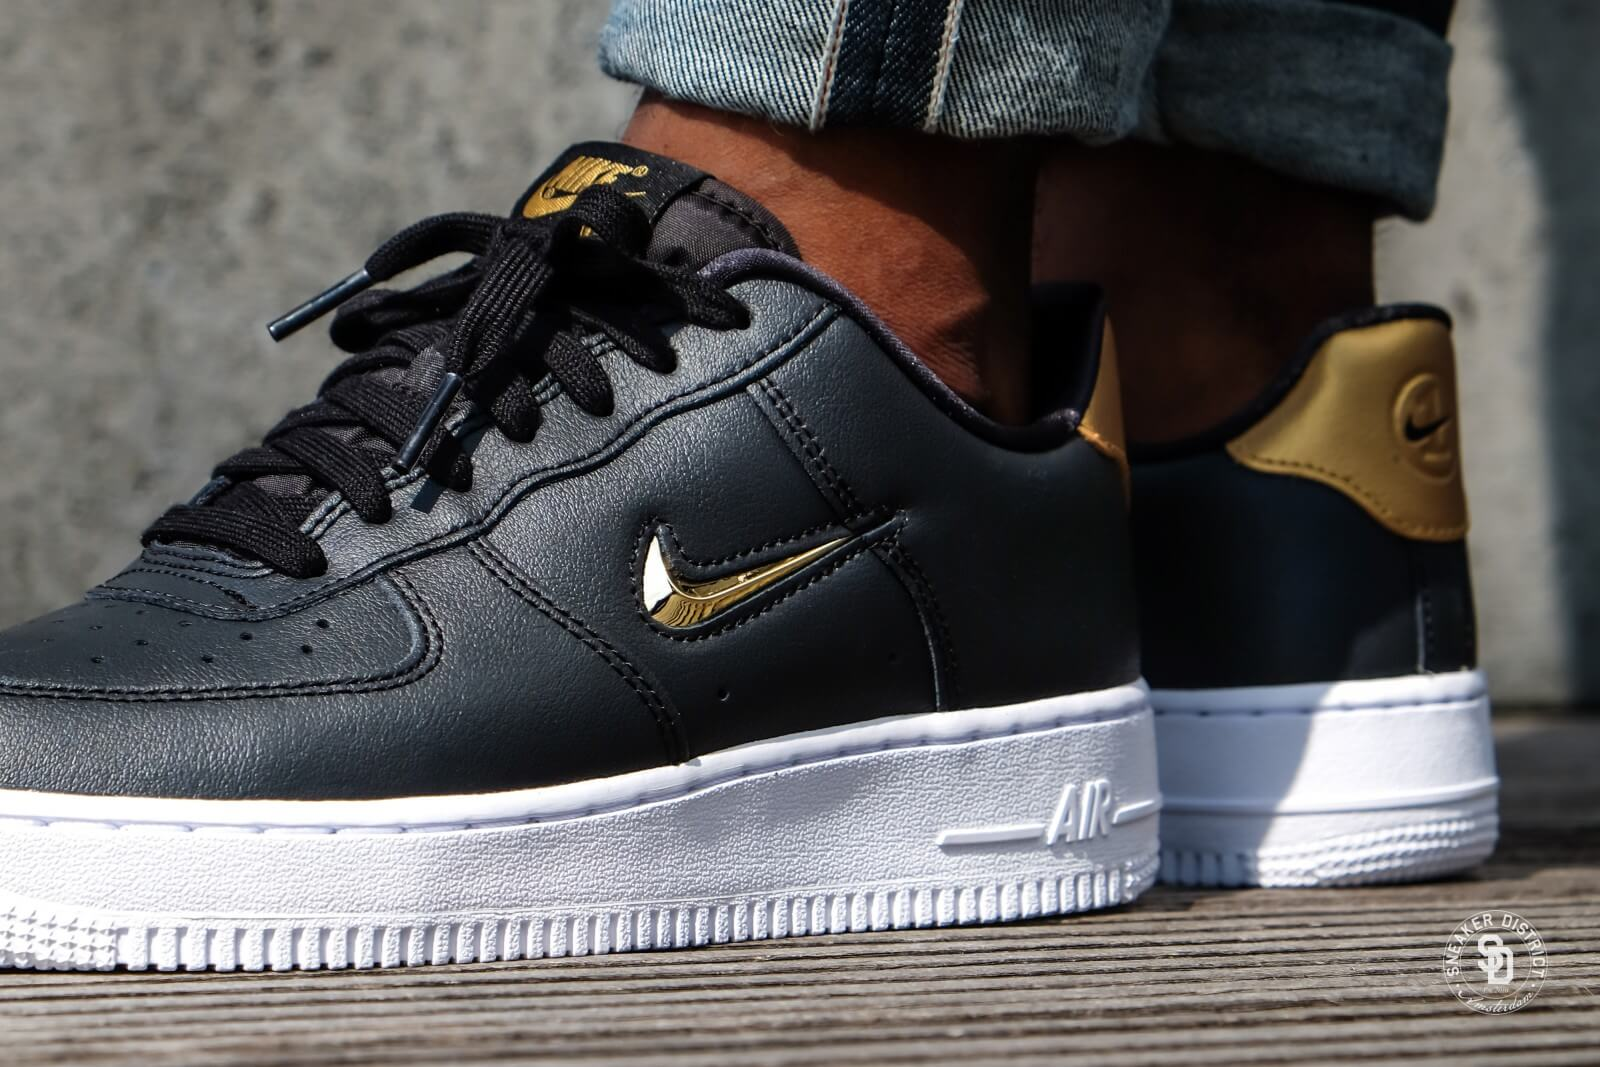 Buy Black And Gold Air Force 1 07 Up To 62 Discounts